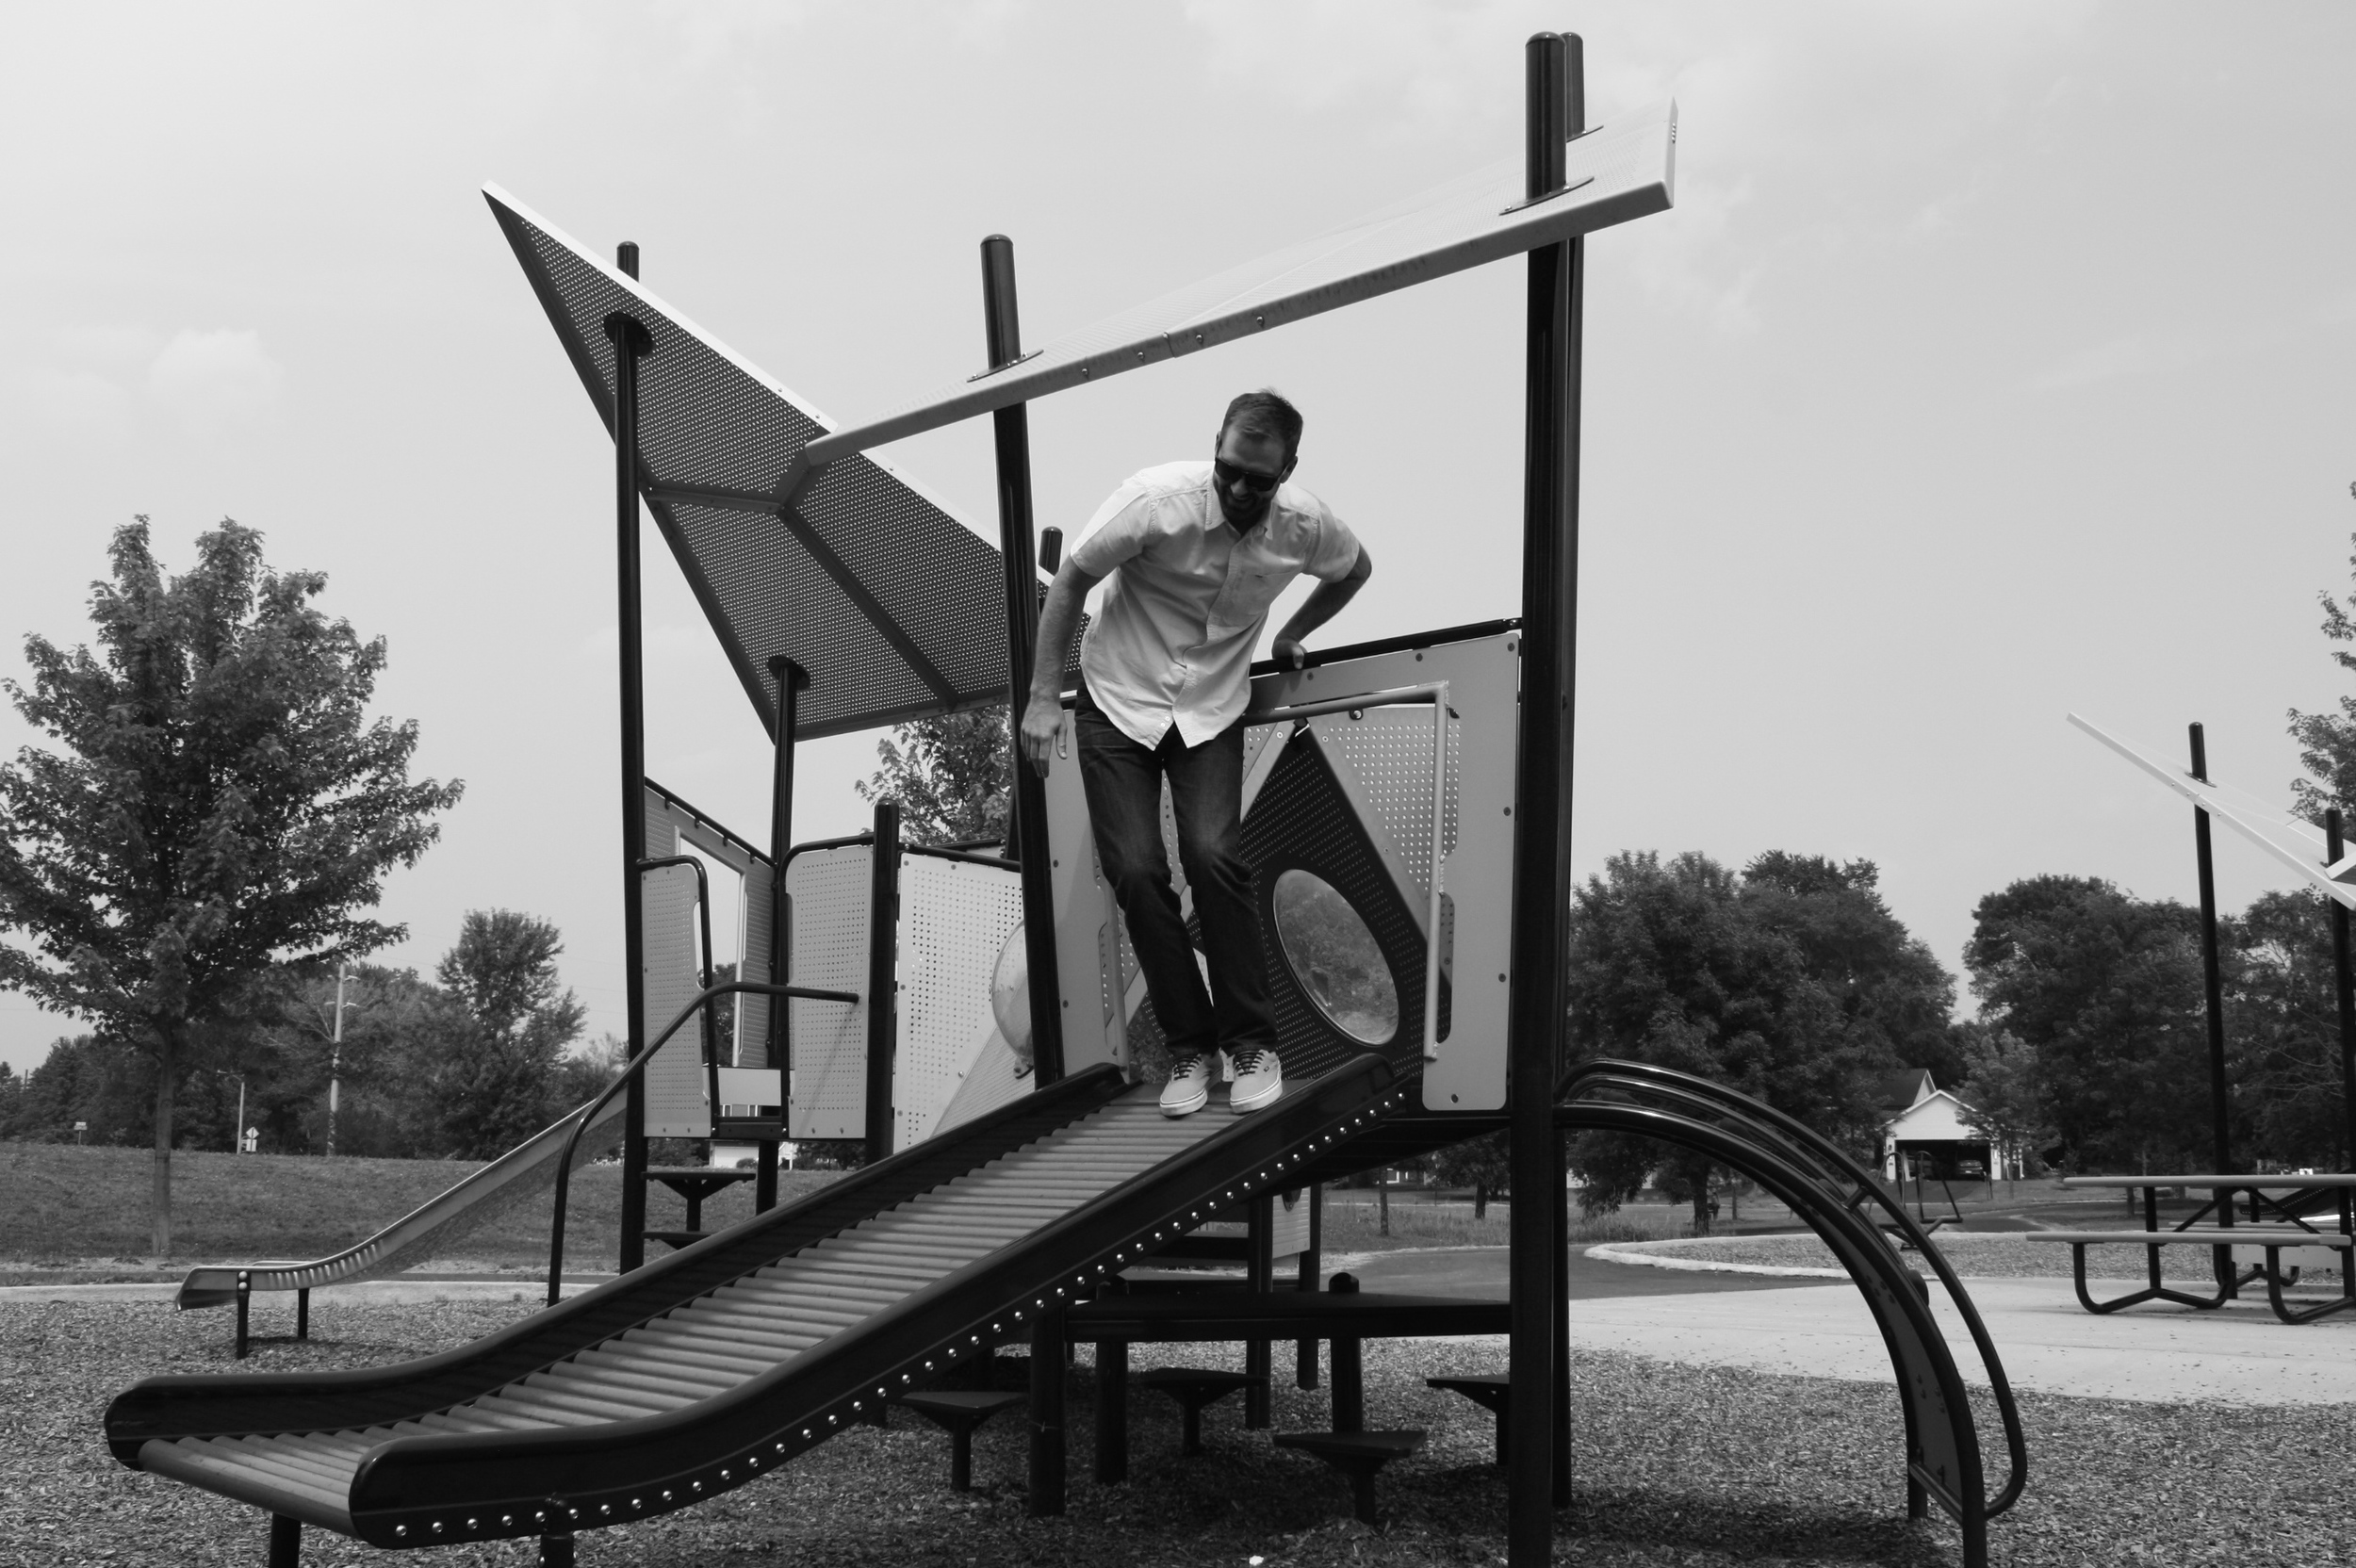 Nate Tierney explores the Barb King Playground in Delano, MN.